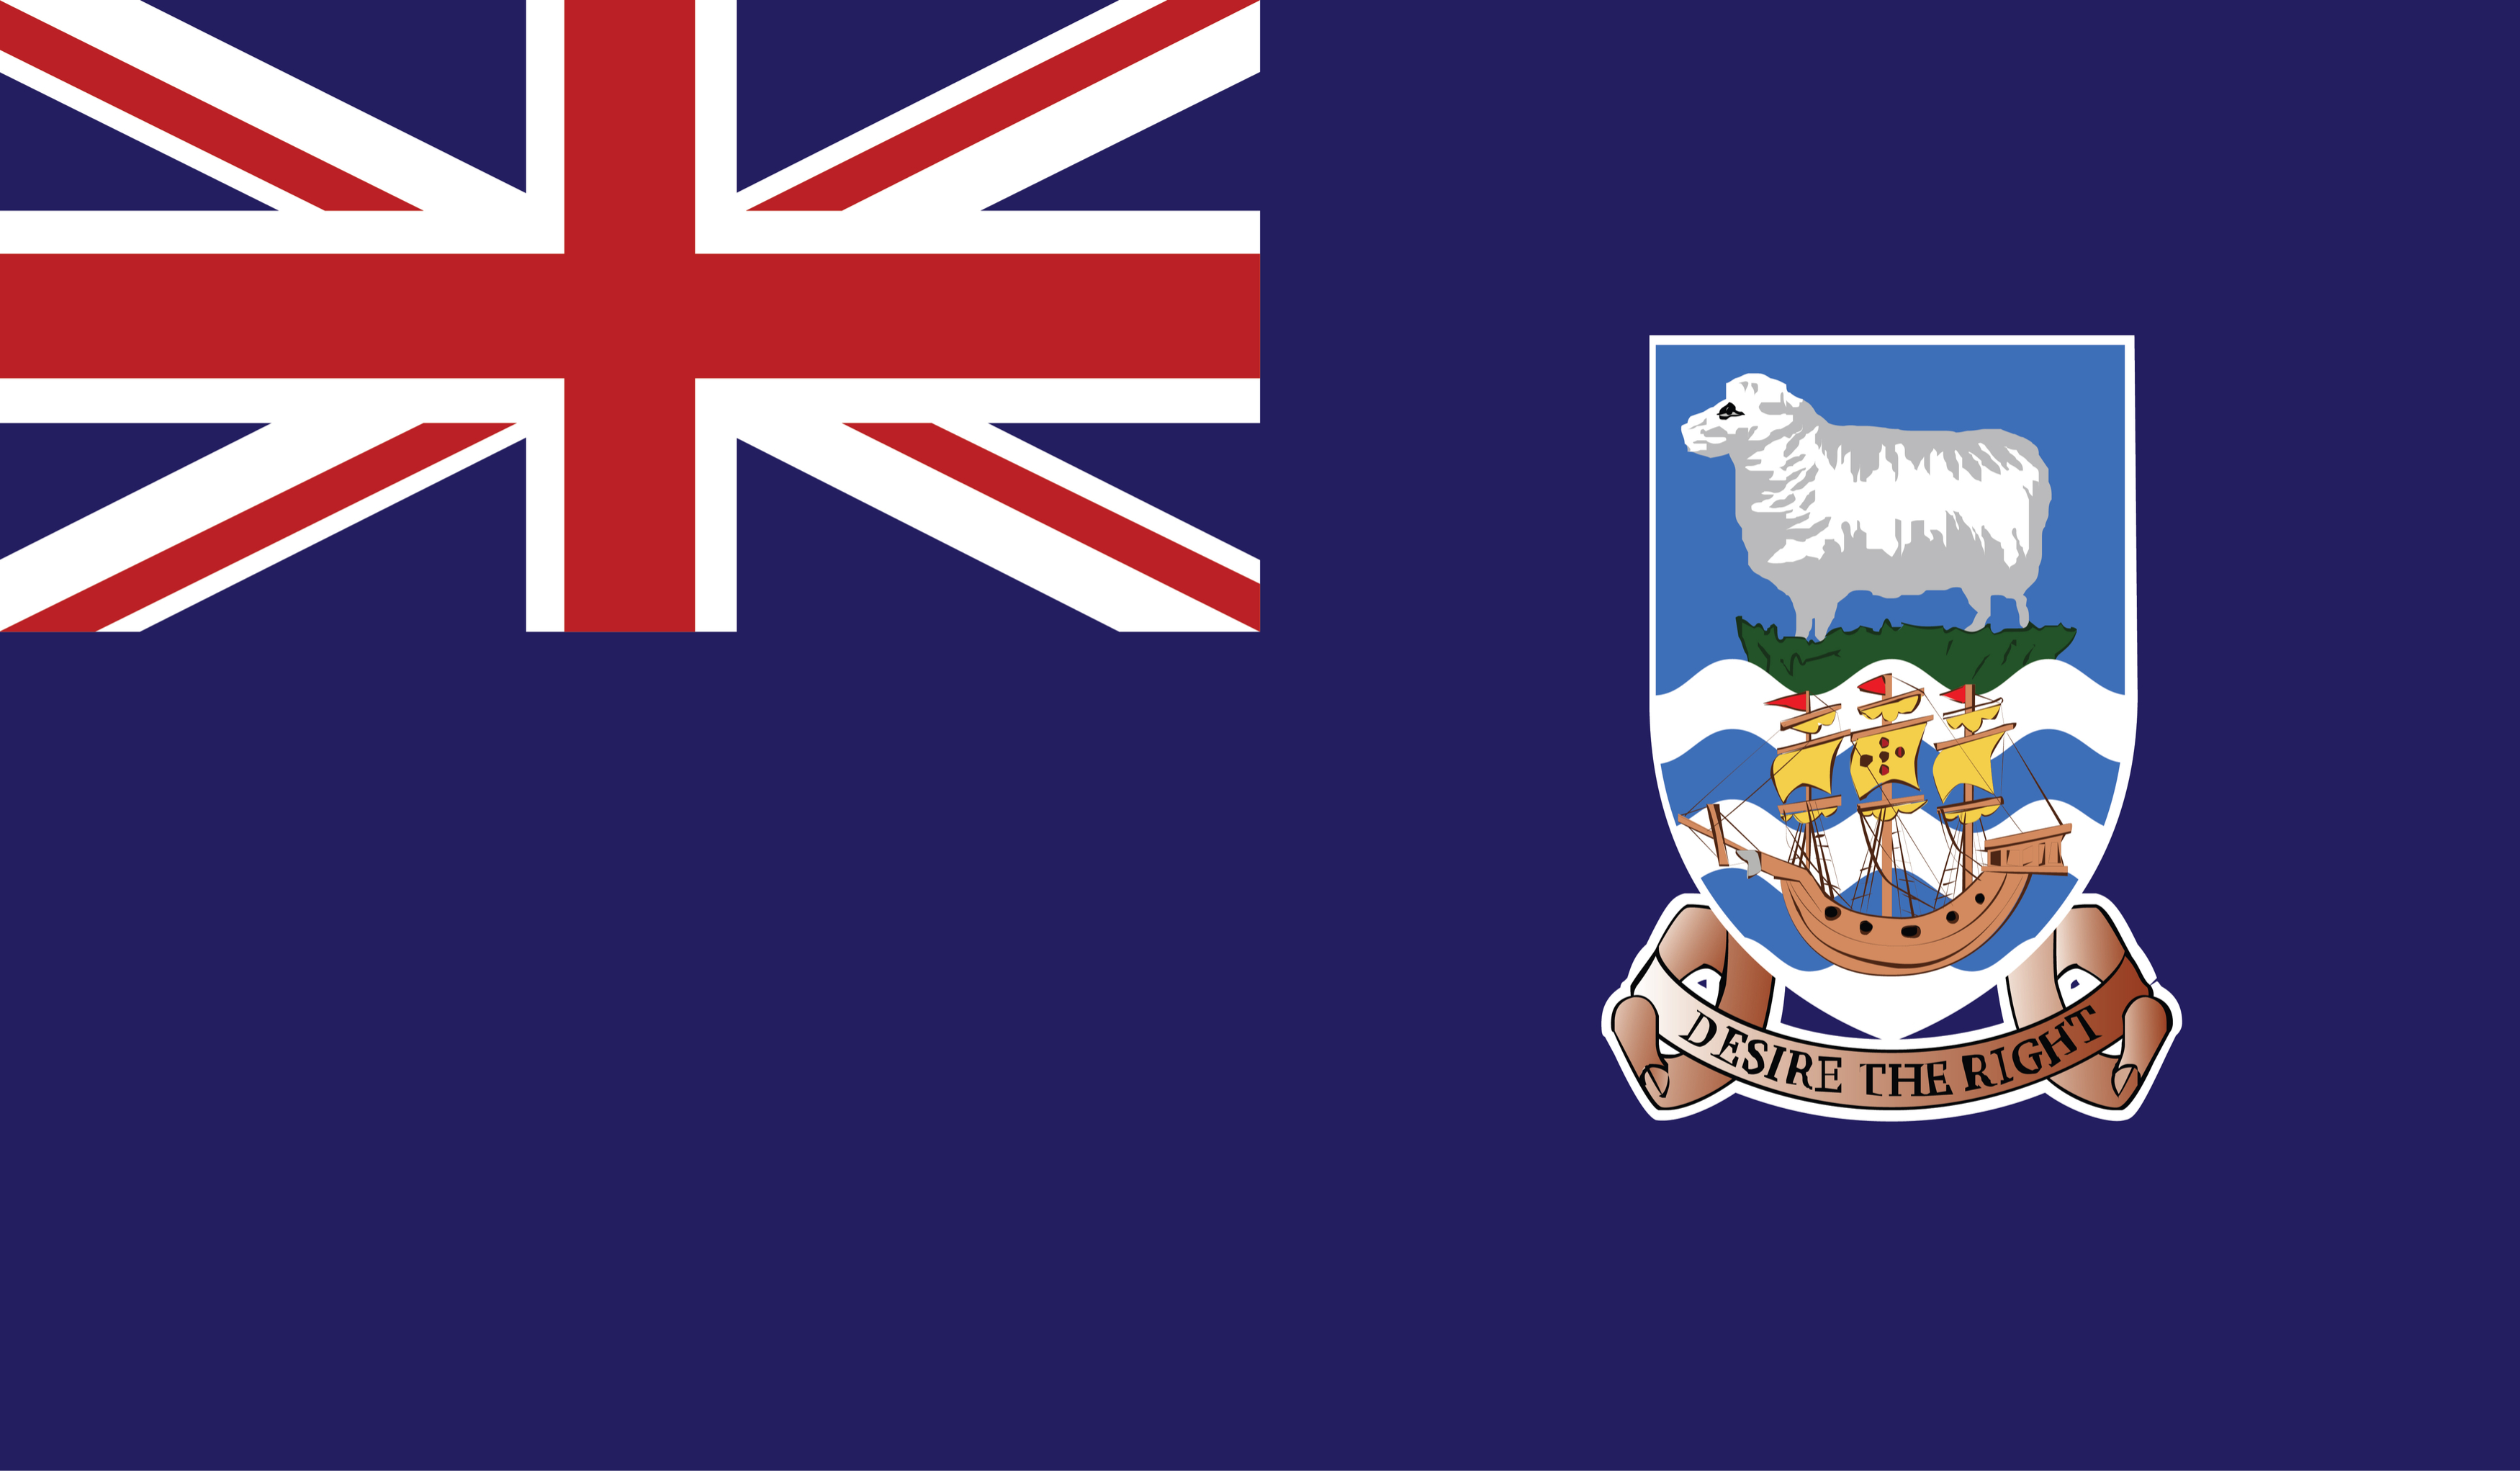 The flag of Falkland Islands comprises a blue background with the Union Jack in the upper hoist-side quadrant and the Falkland Island coat of arms centered on the outer half of the flag